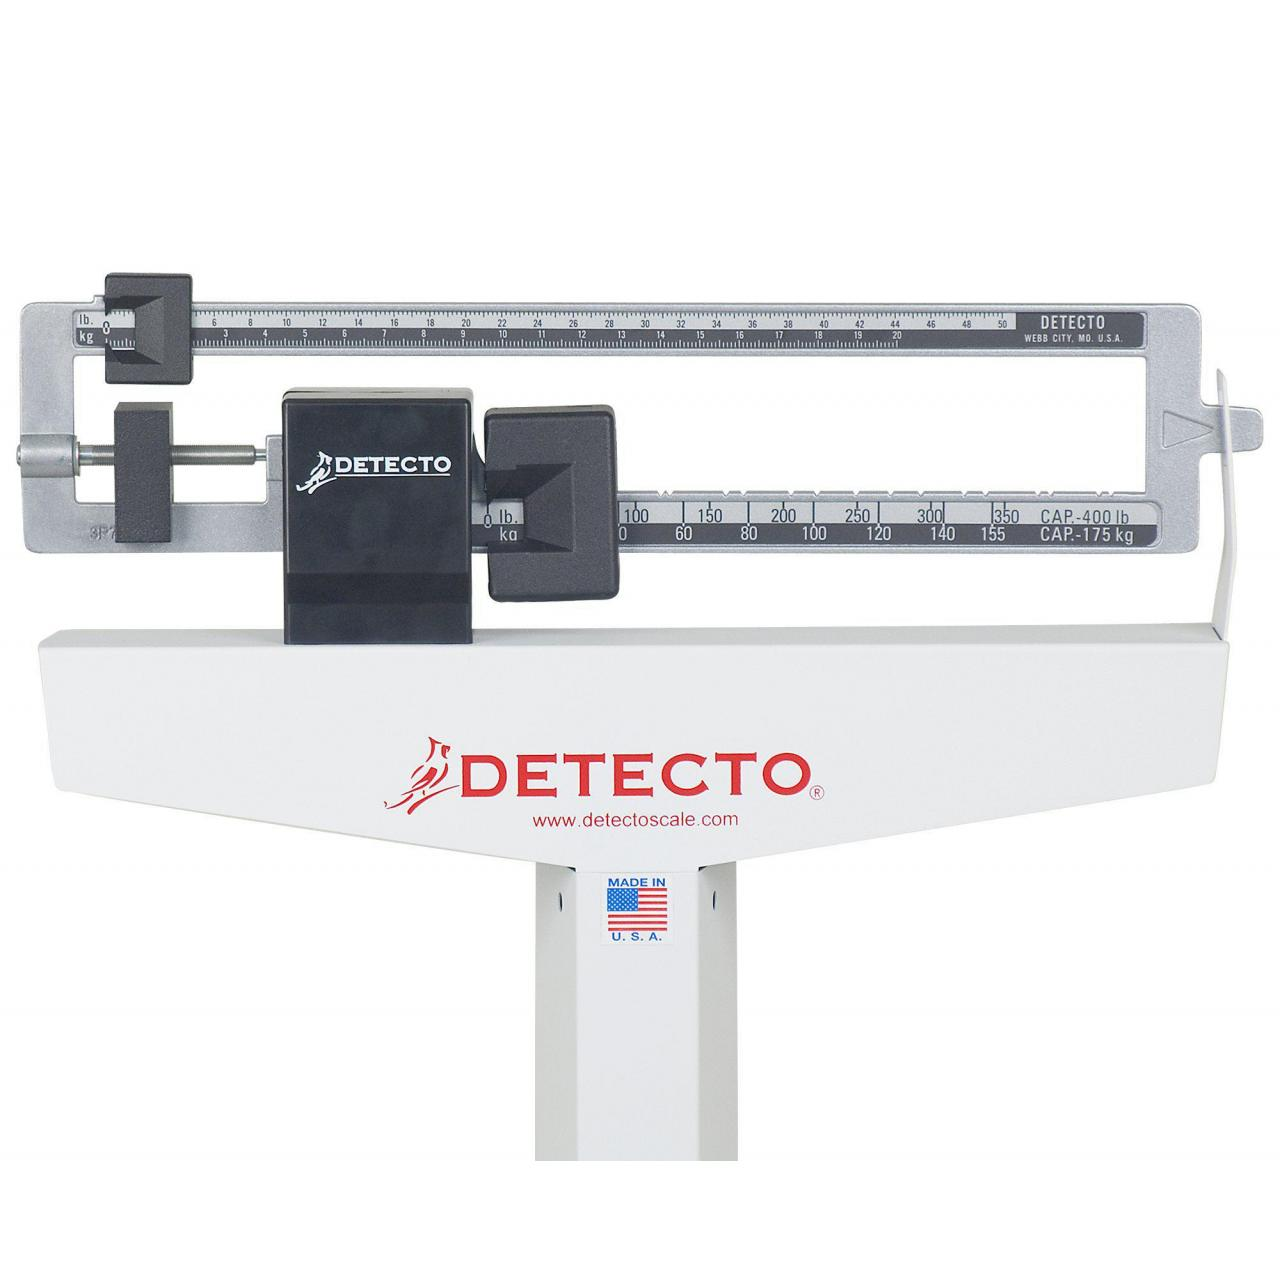 Buy cheap detecto bathroom scales product